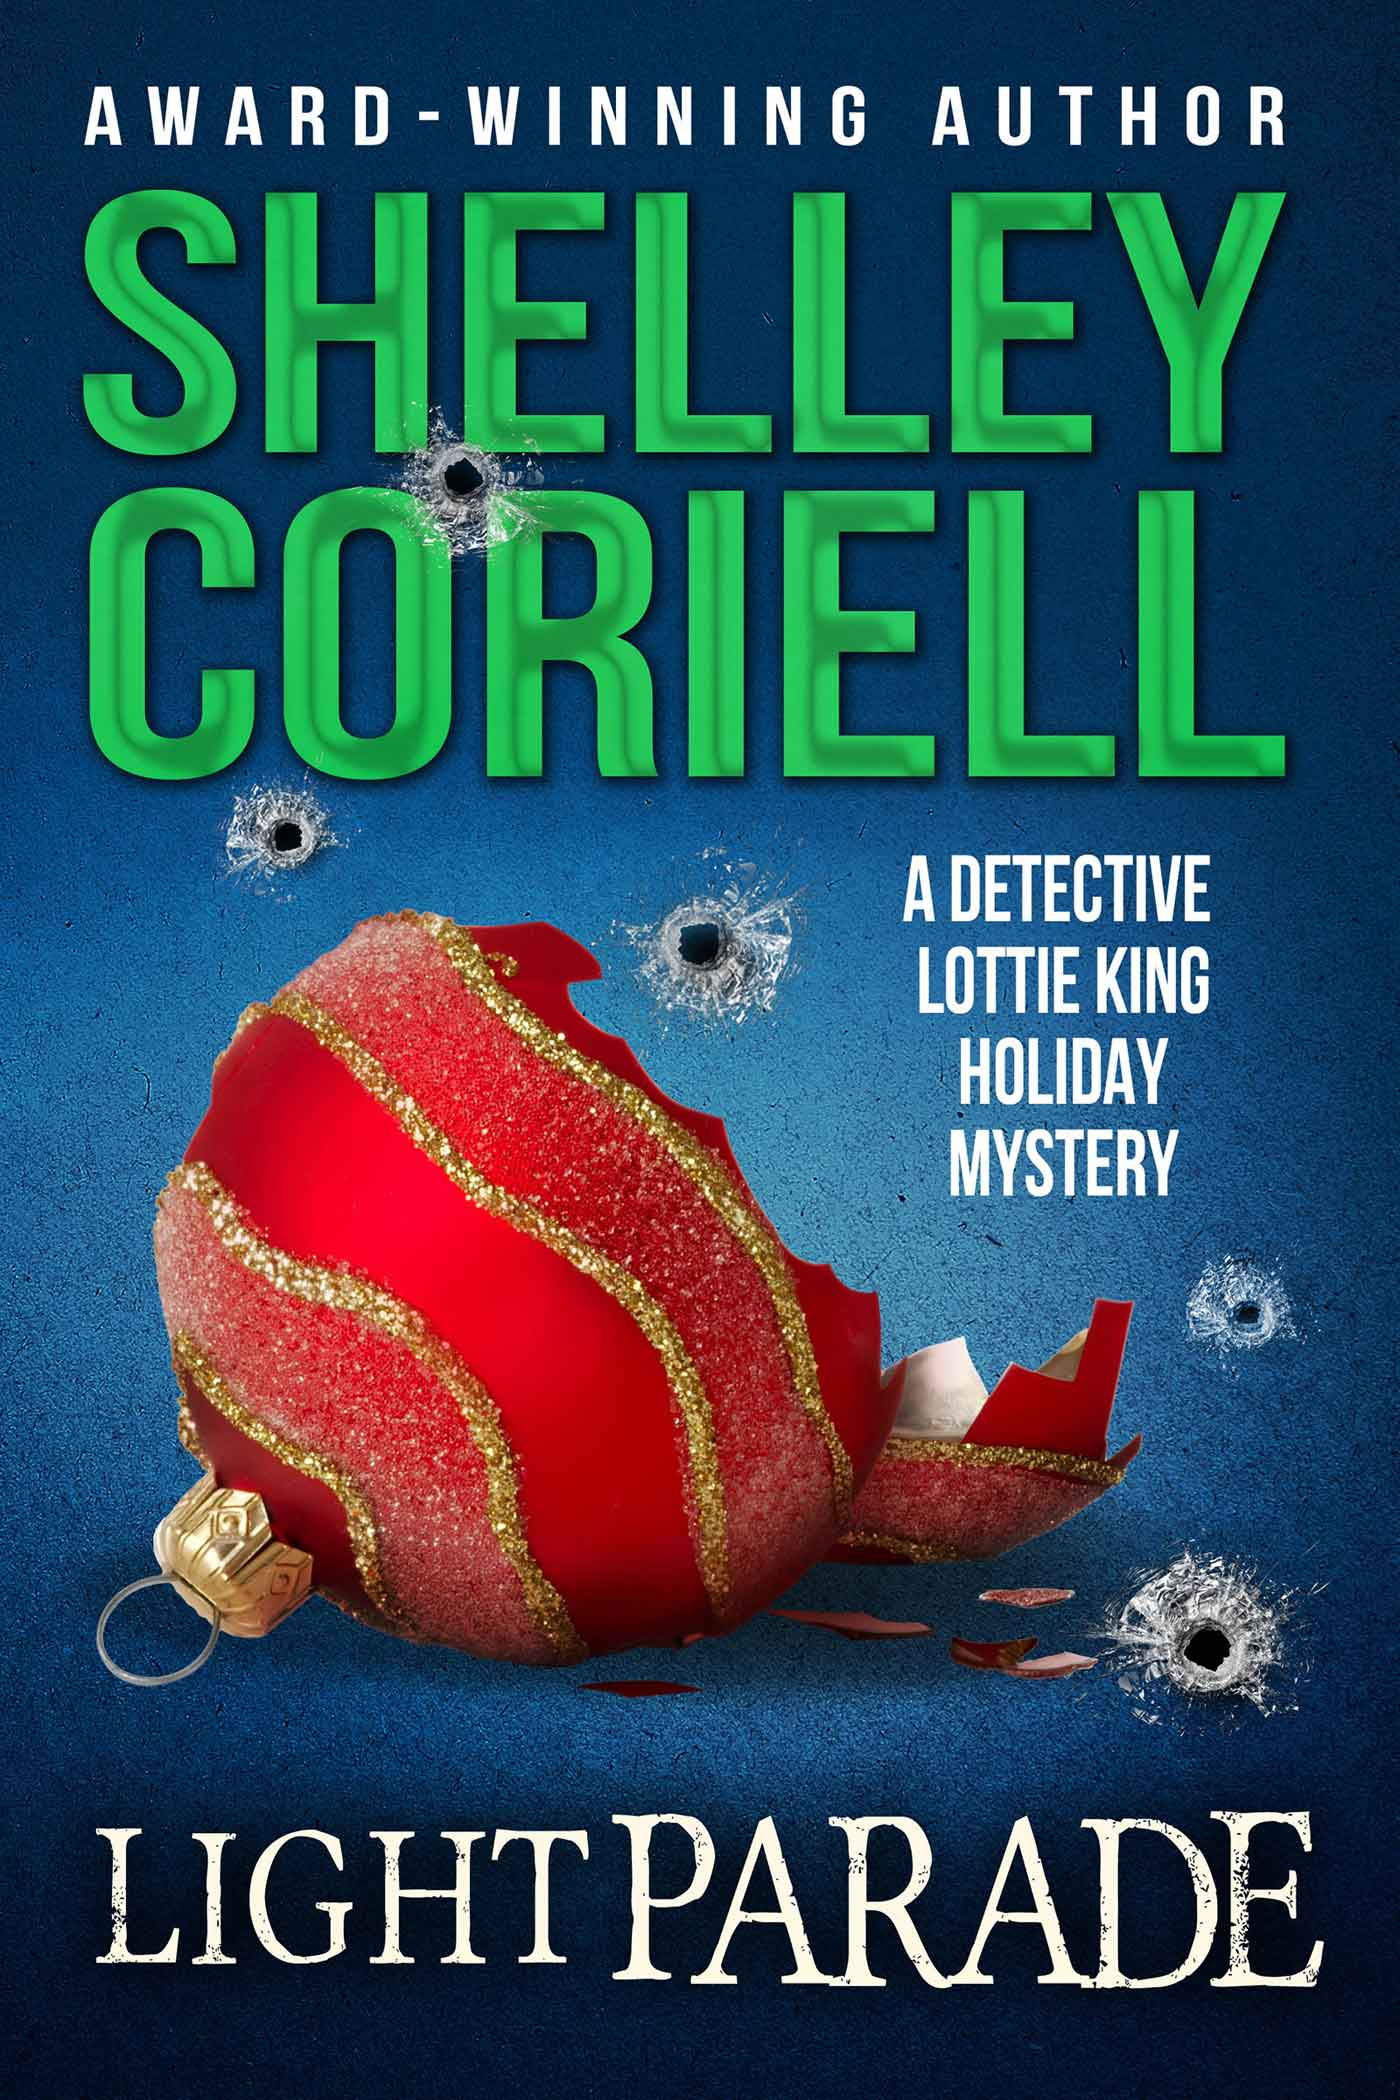 Light Parade (Detective Lottie King Mysteries, Vol. 2.5) a Detective Lottie King Mystery by Shelley Coriell, published by Winter Pear Press